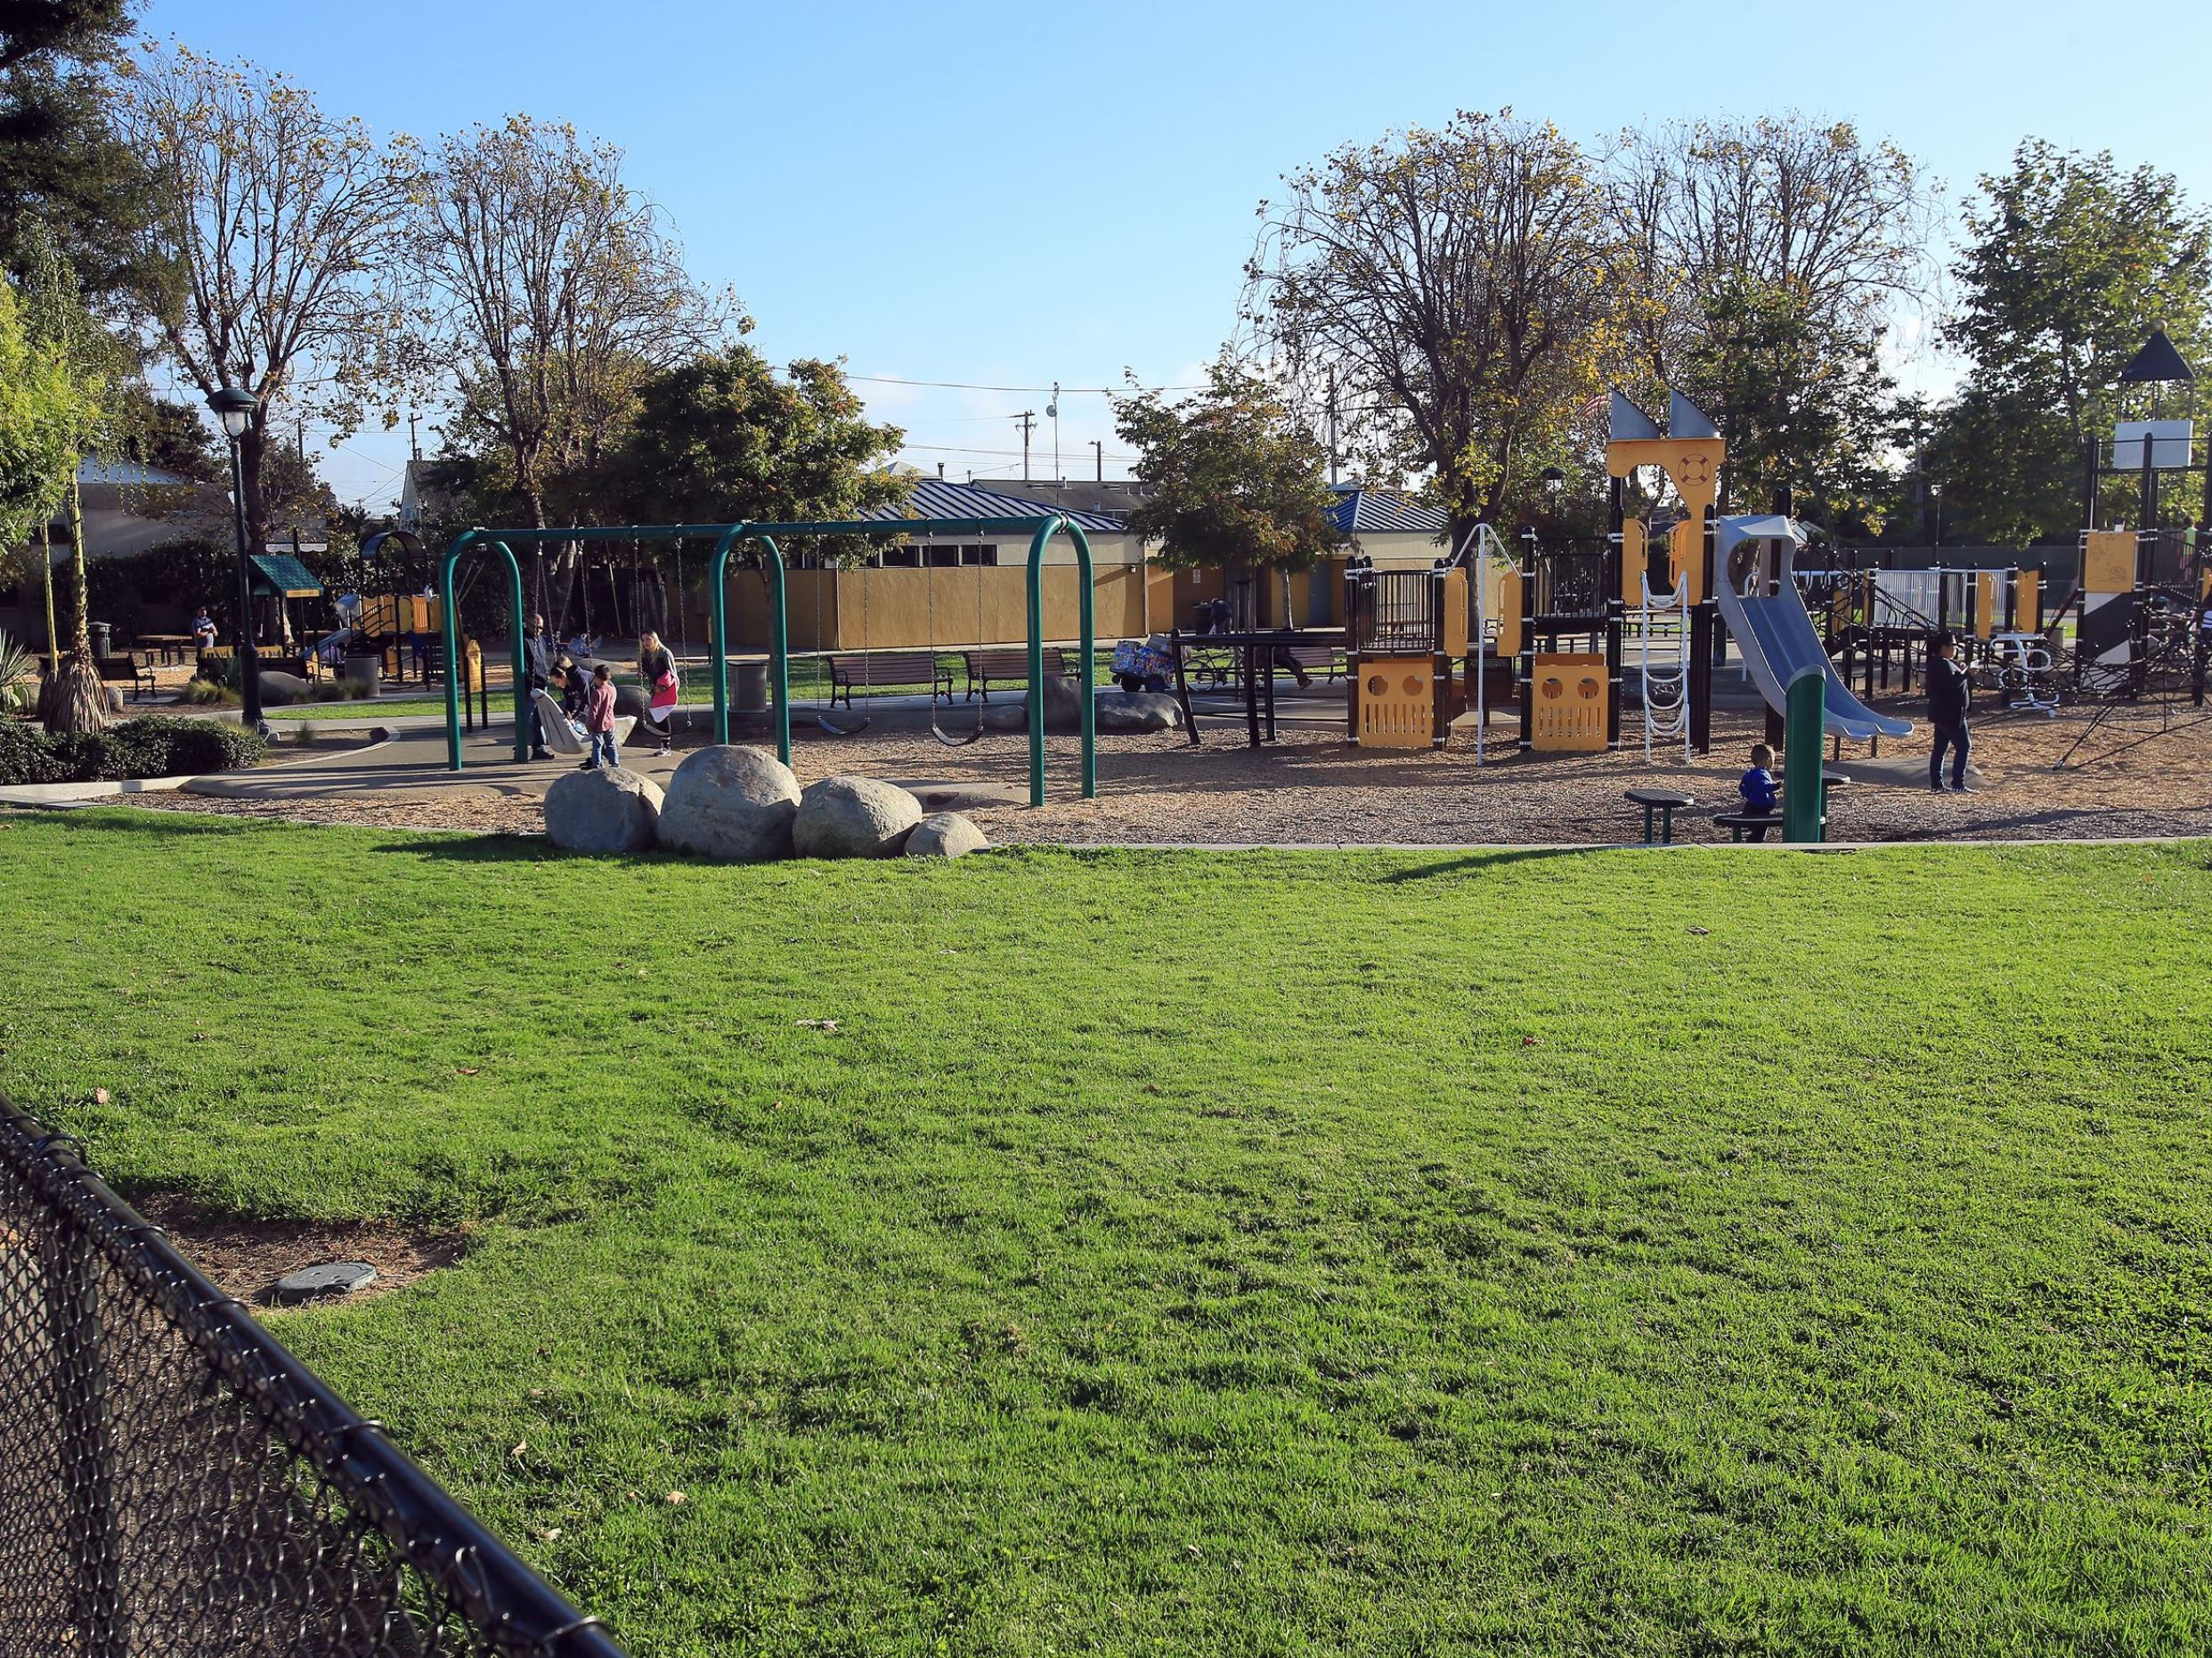 Callaghan park green space next to playground area